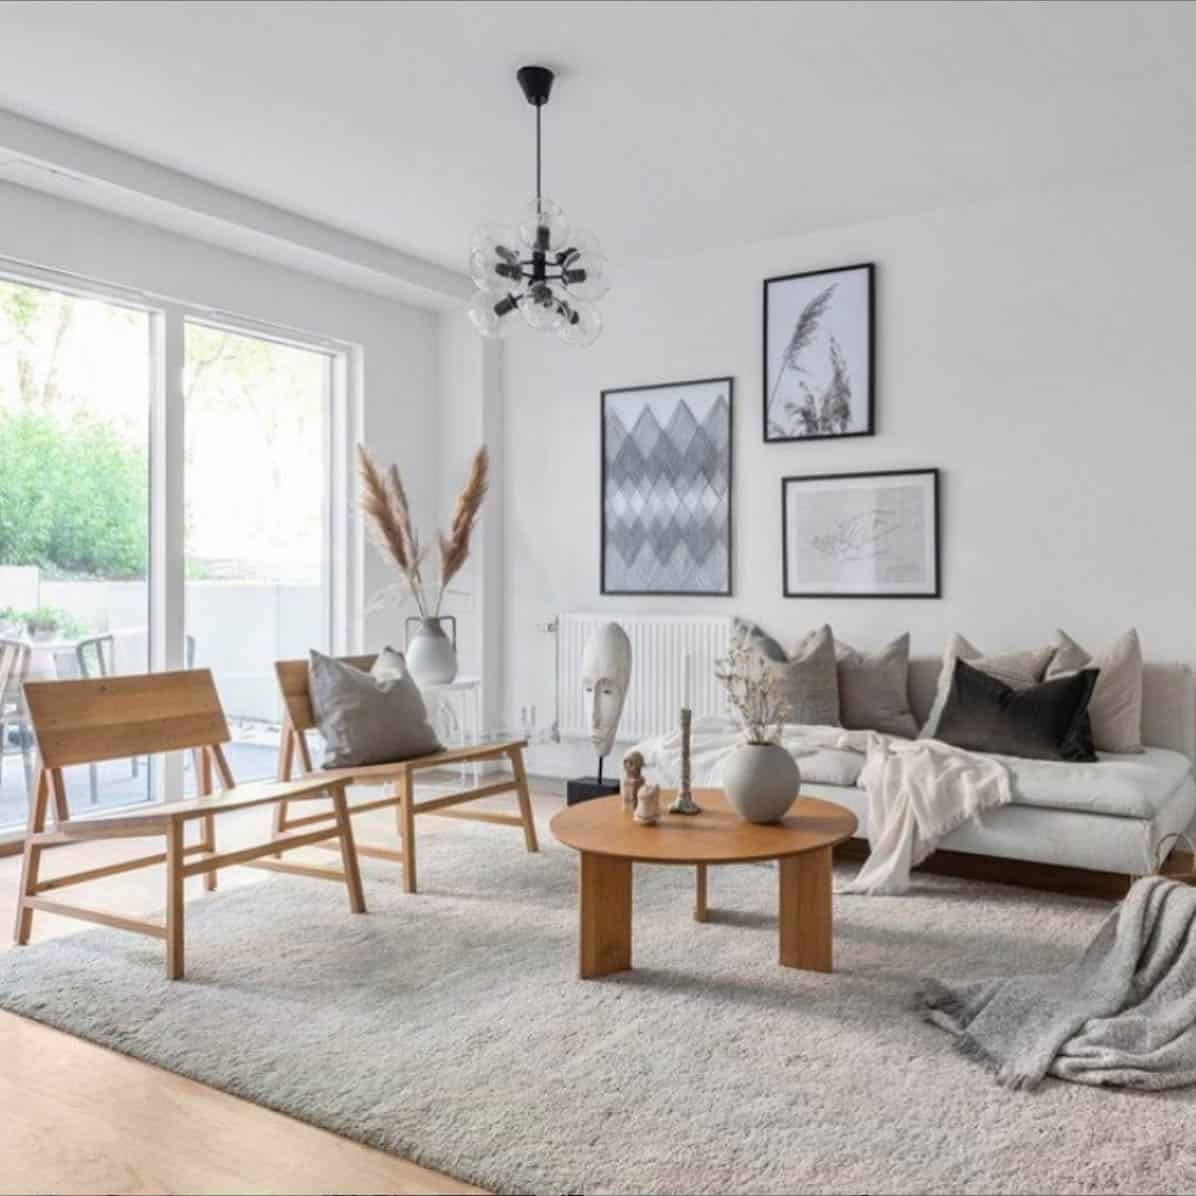 25 Cozy Ways to Embrace the Hygge Life 2